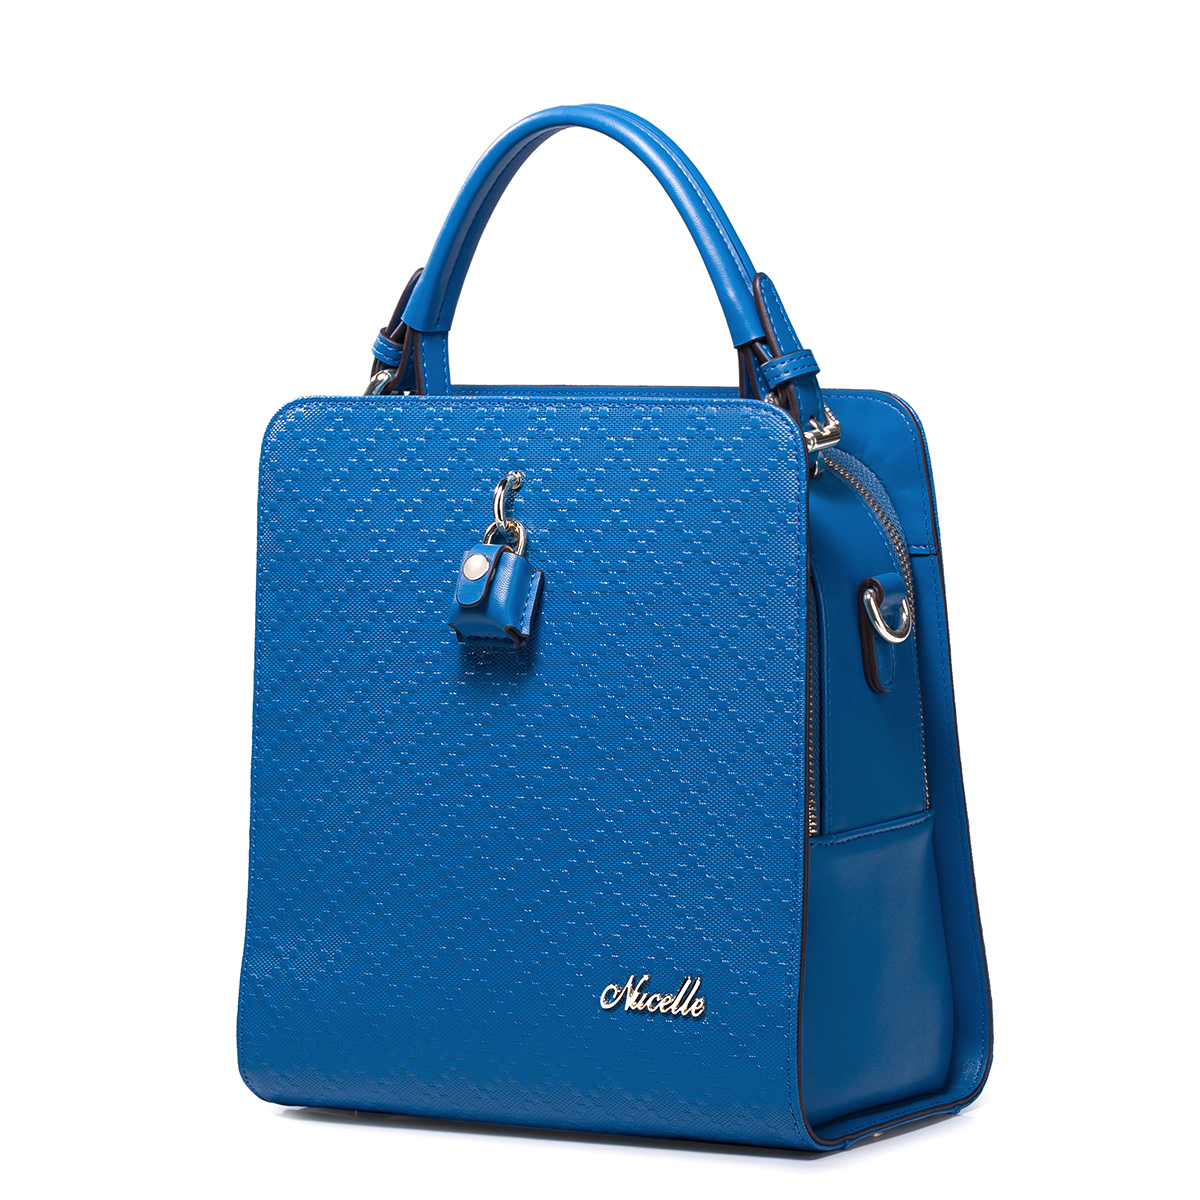 NUCELLE Real leather handbags/shoulder bag Blue